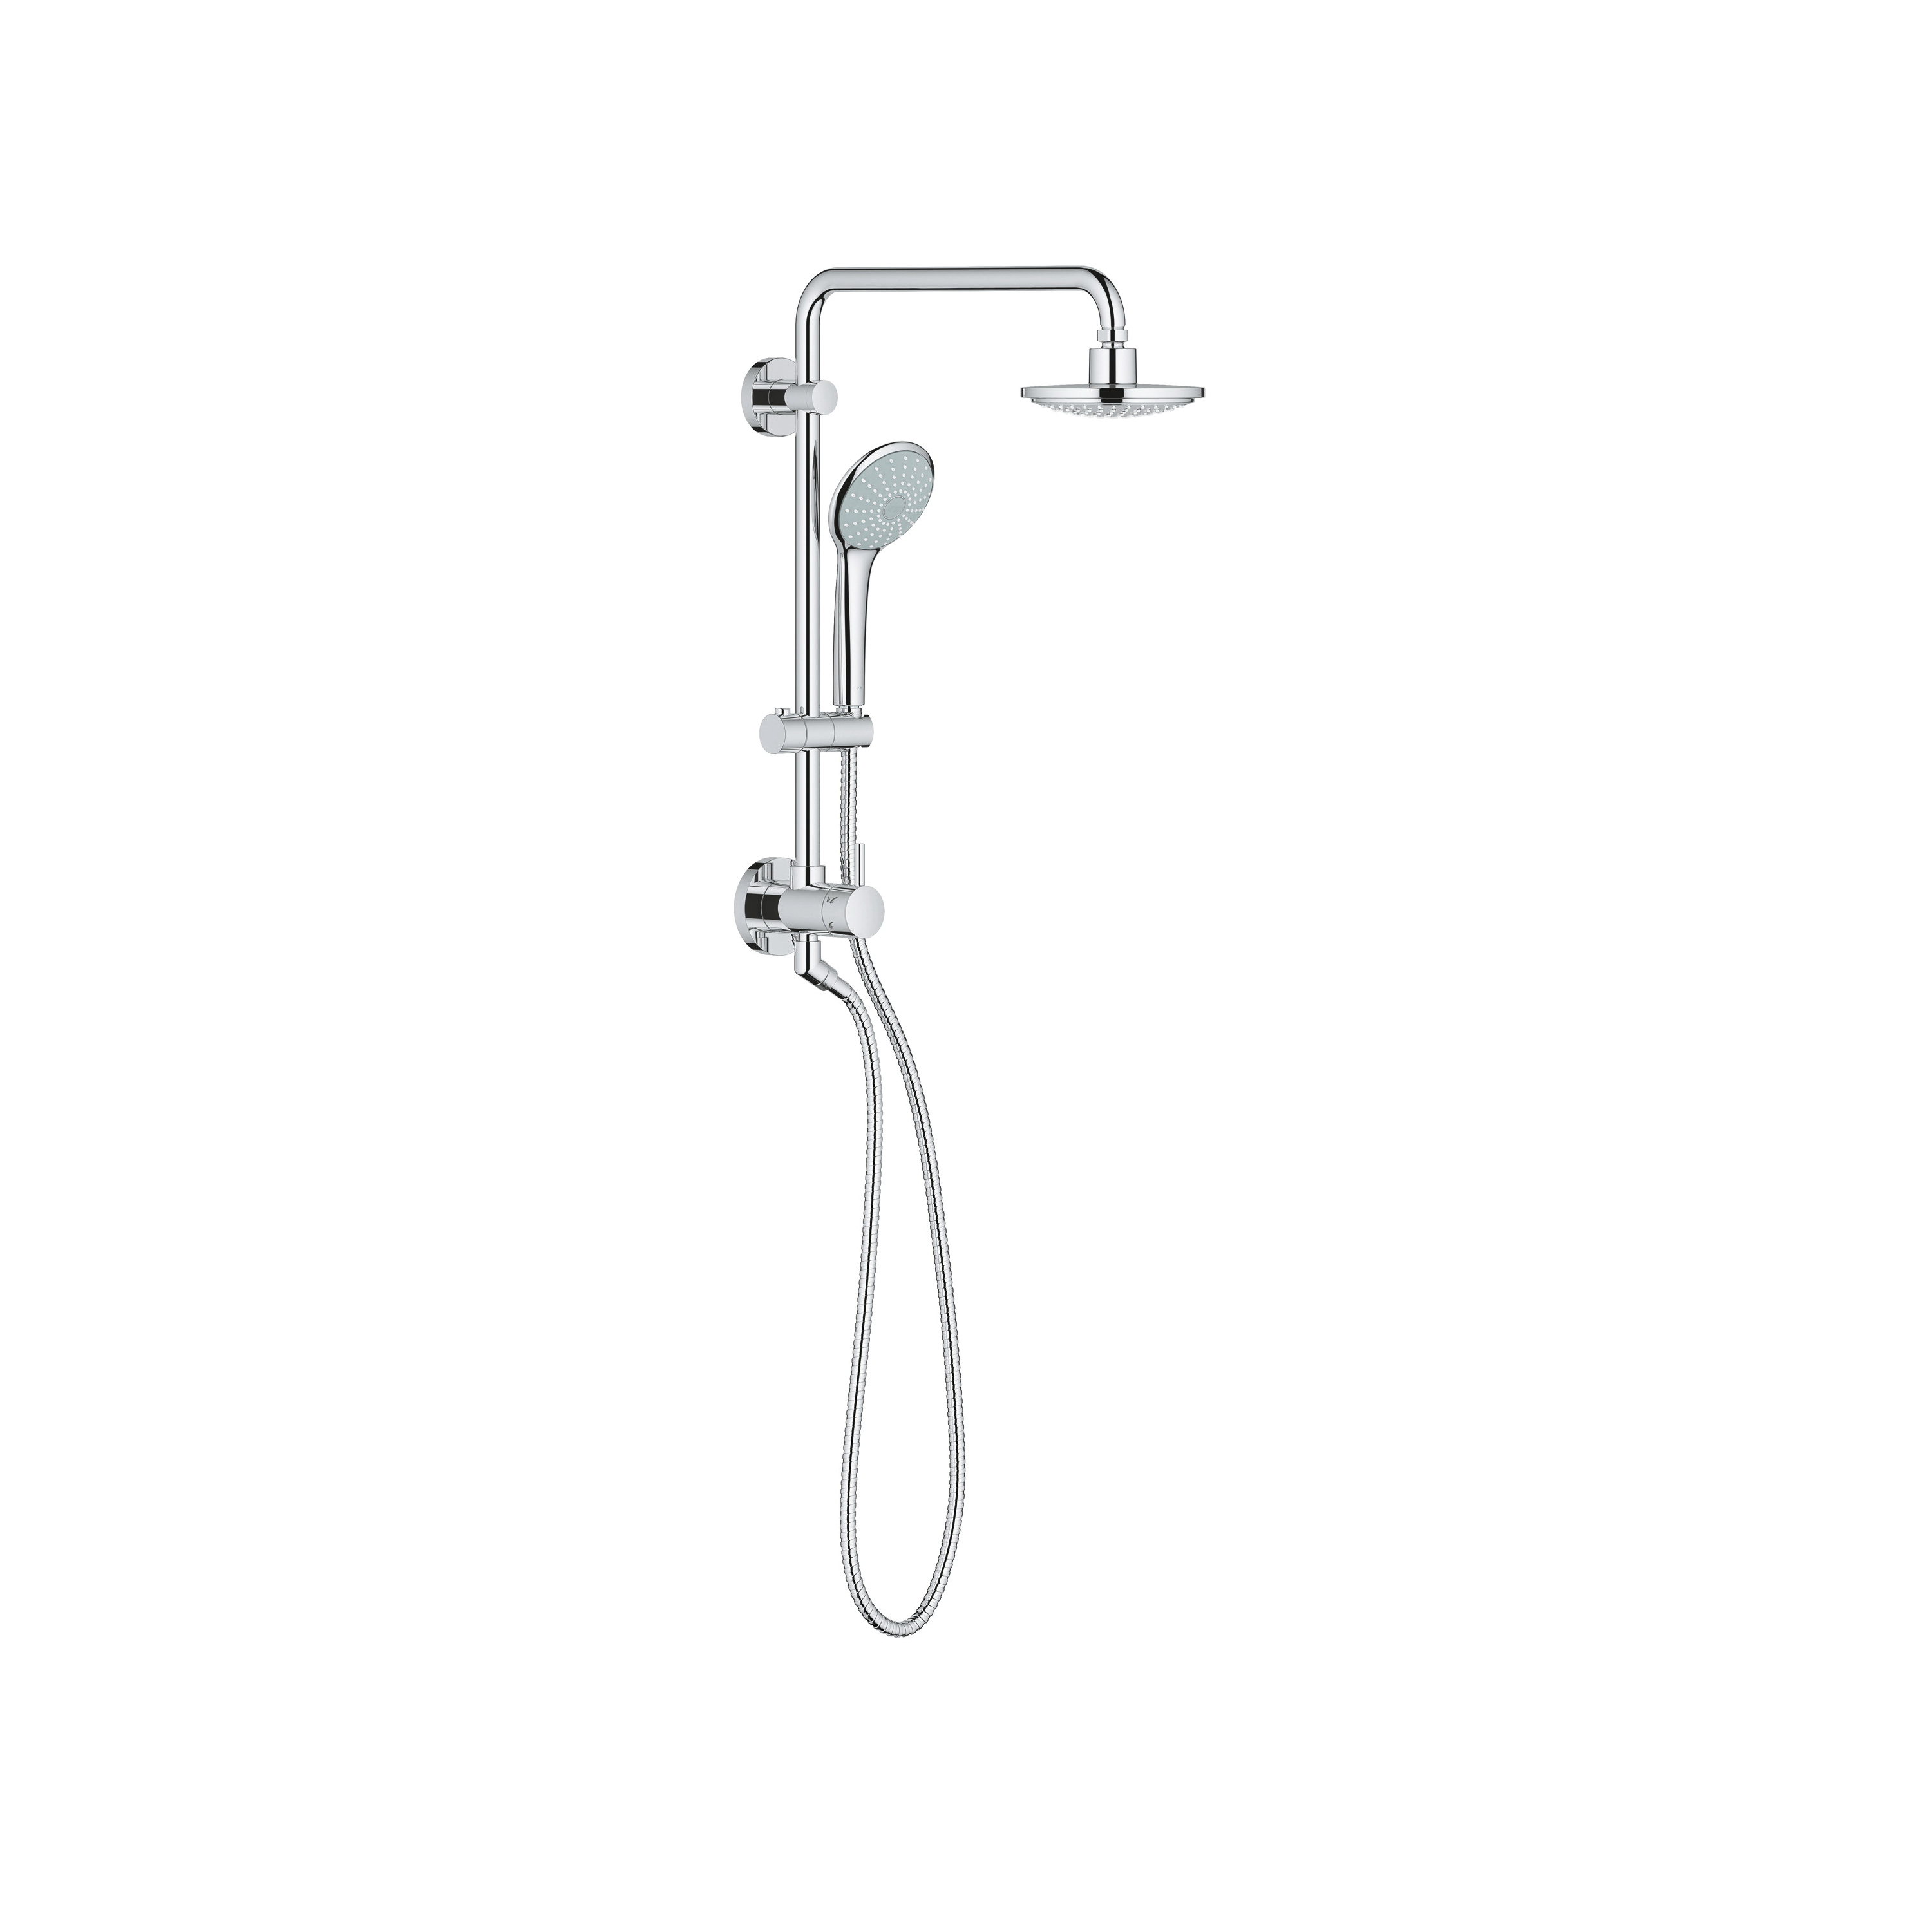 GROHE 26192000 Retro-Fit Shower System, 6-5/16 in Dia Head, 1 Shower Head, 2.5 gpm, 1/2 in NPT-FIP, Slide Bar: No, StarLight® Chrome, Import